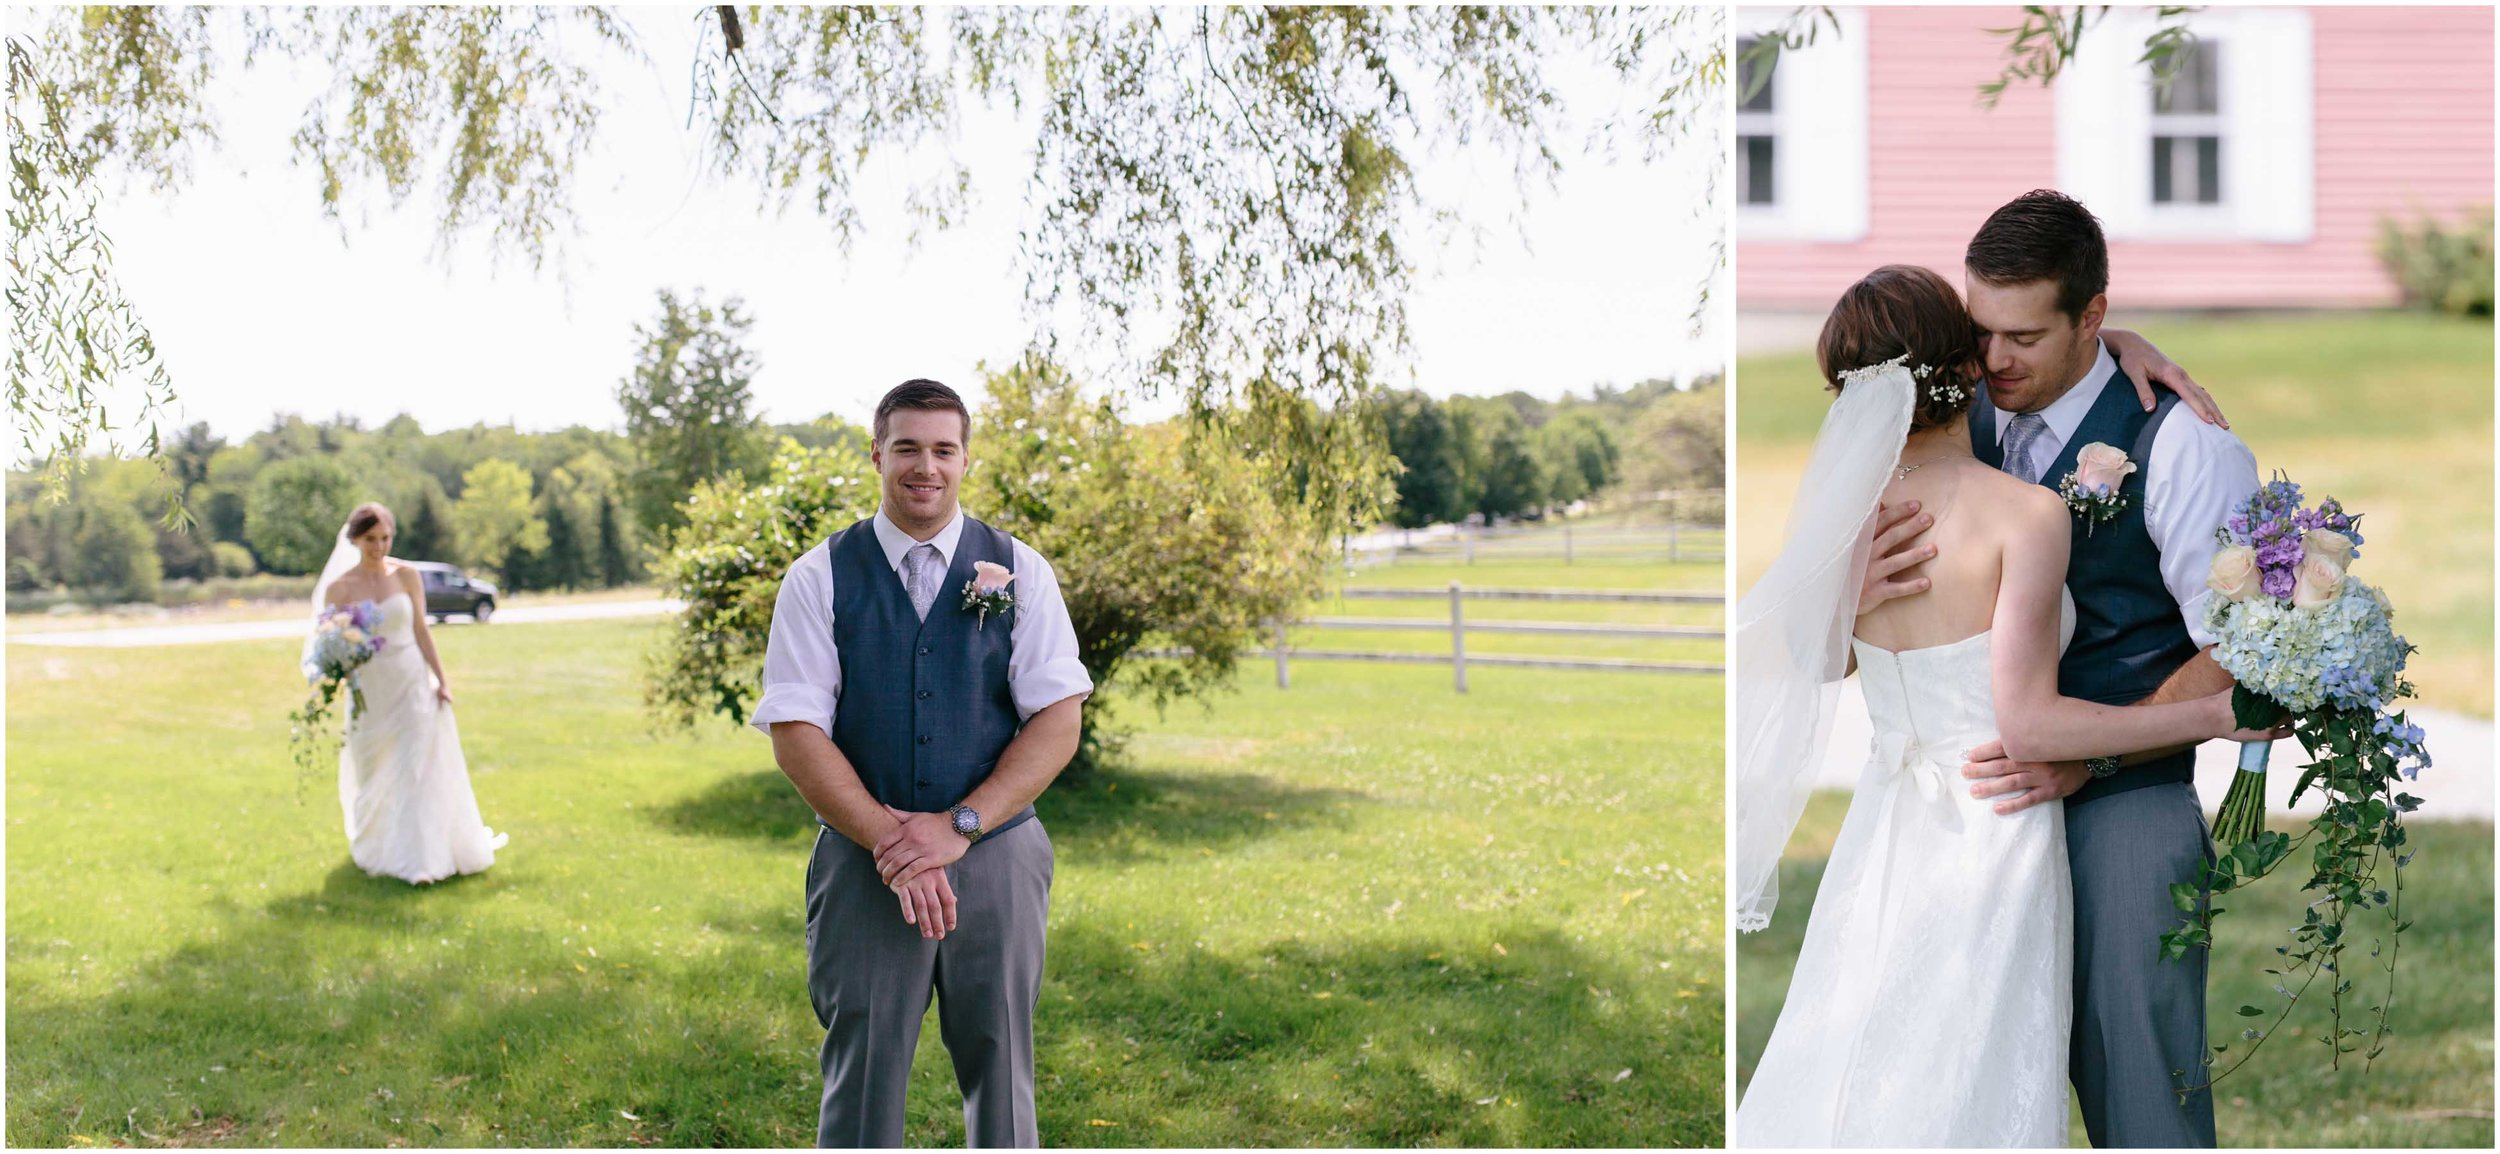 Sunny New Hampshire Summer Wedding at Mile Away Restaurant - first look